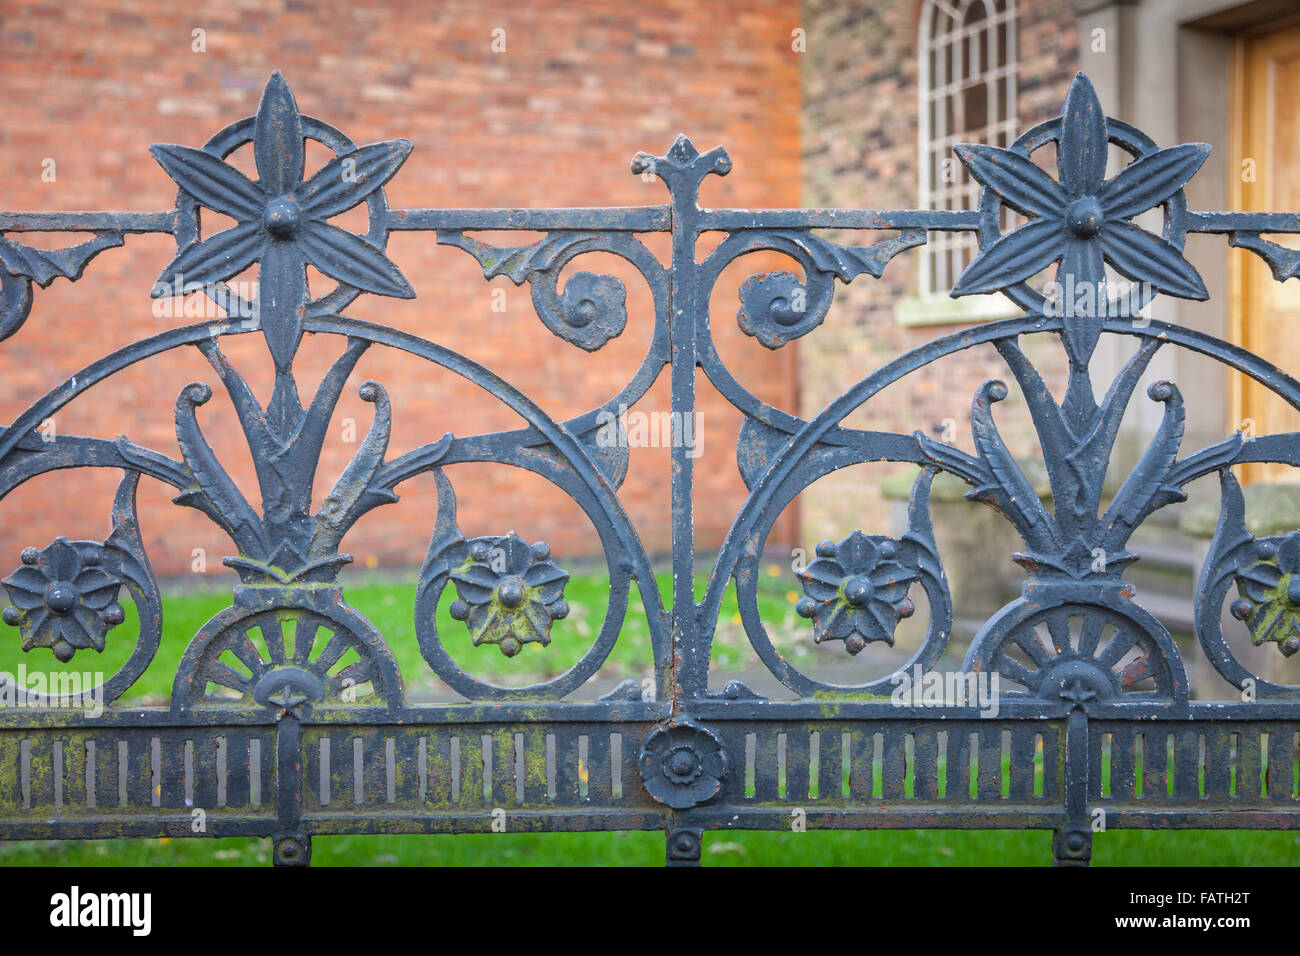 Cast iron railings outside a church in the midlands of Britain UK - Stock Image